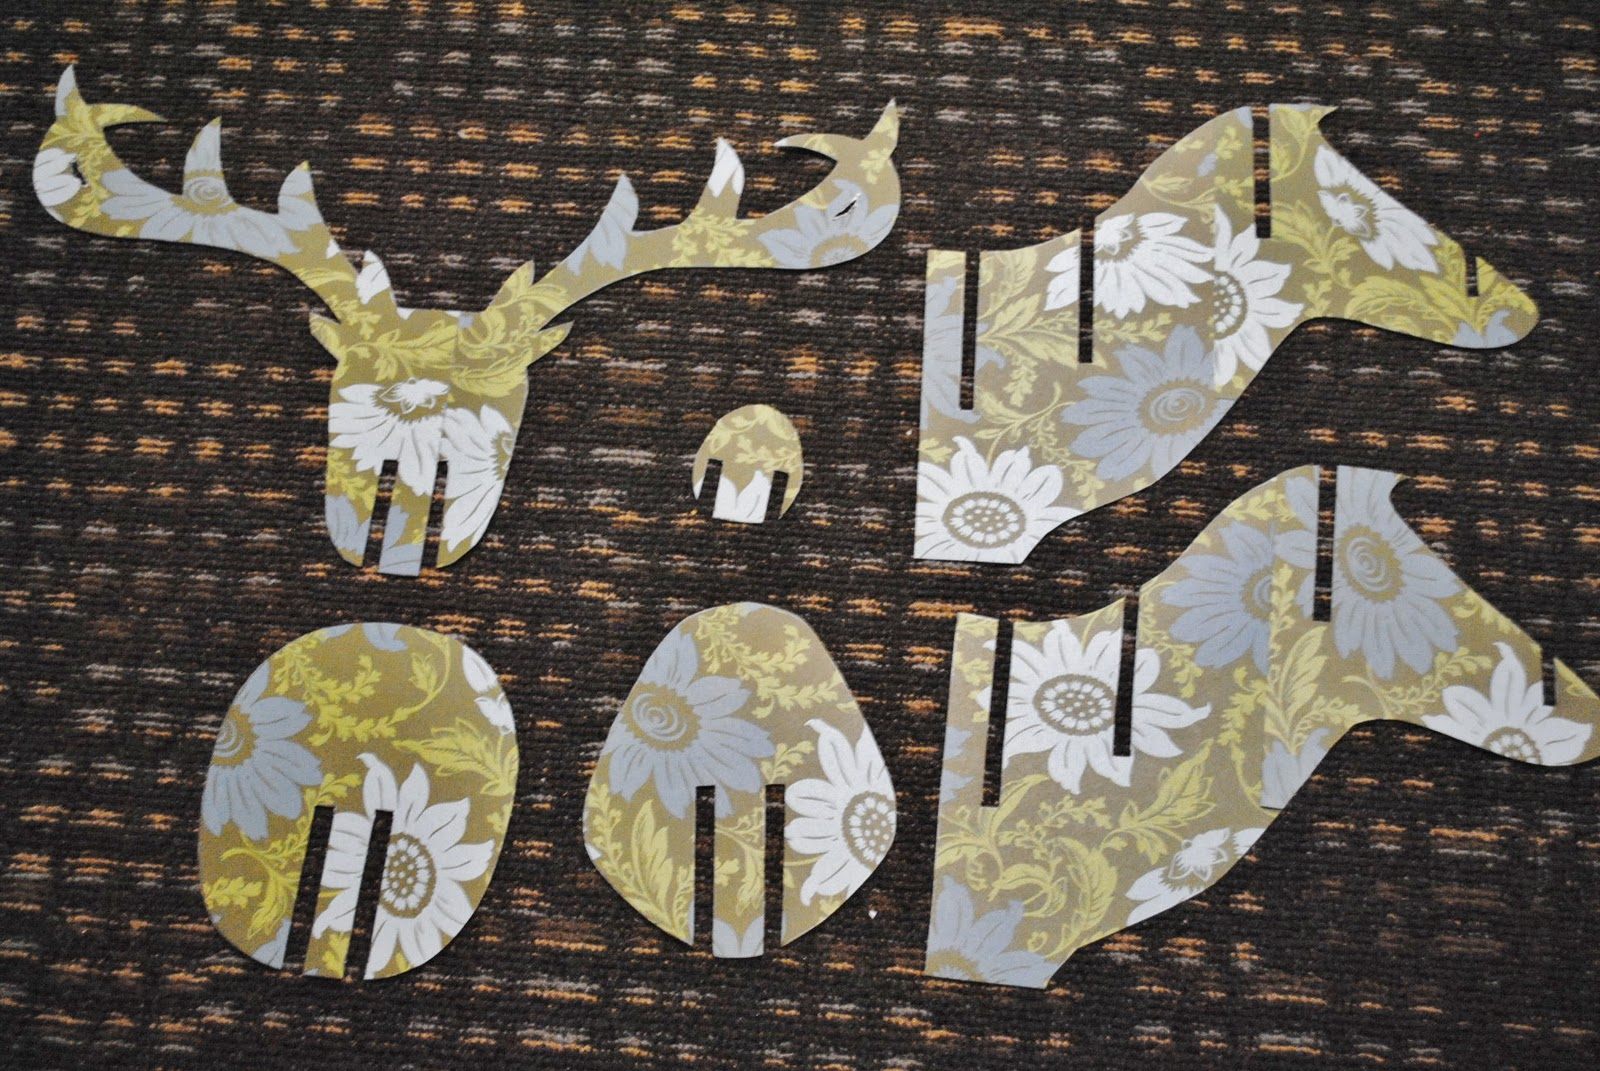 The second party diy deer taxidermy diy deer taxidermy pronofoot35fo Gallery